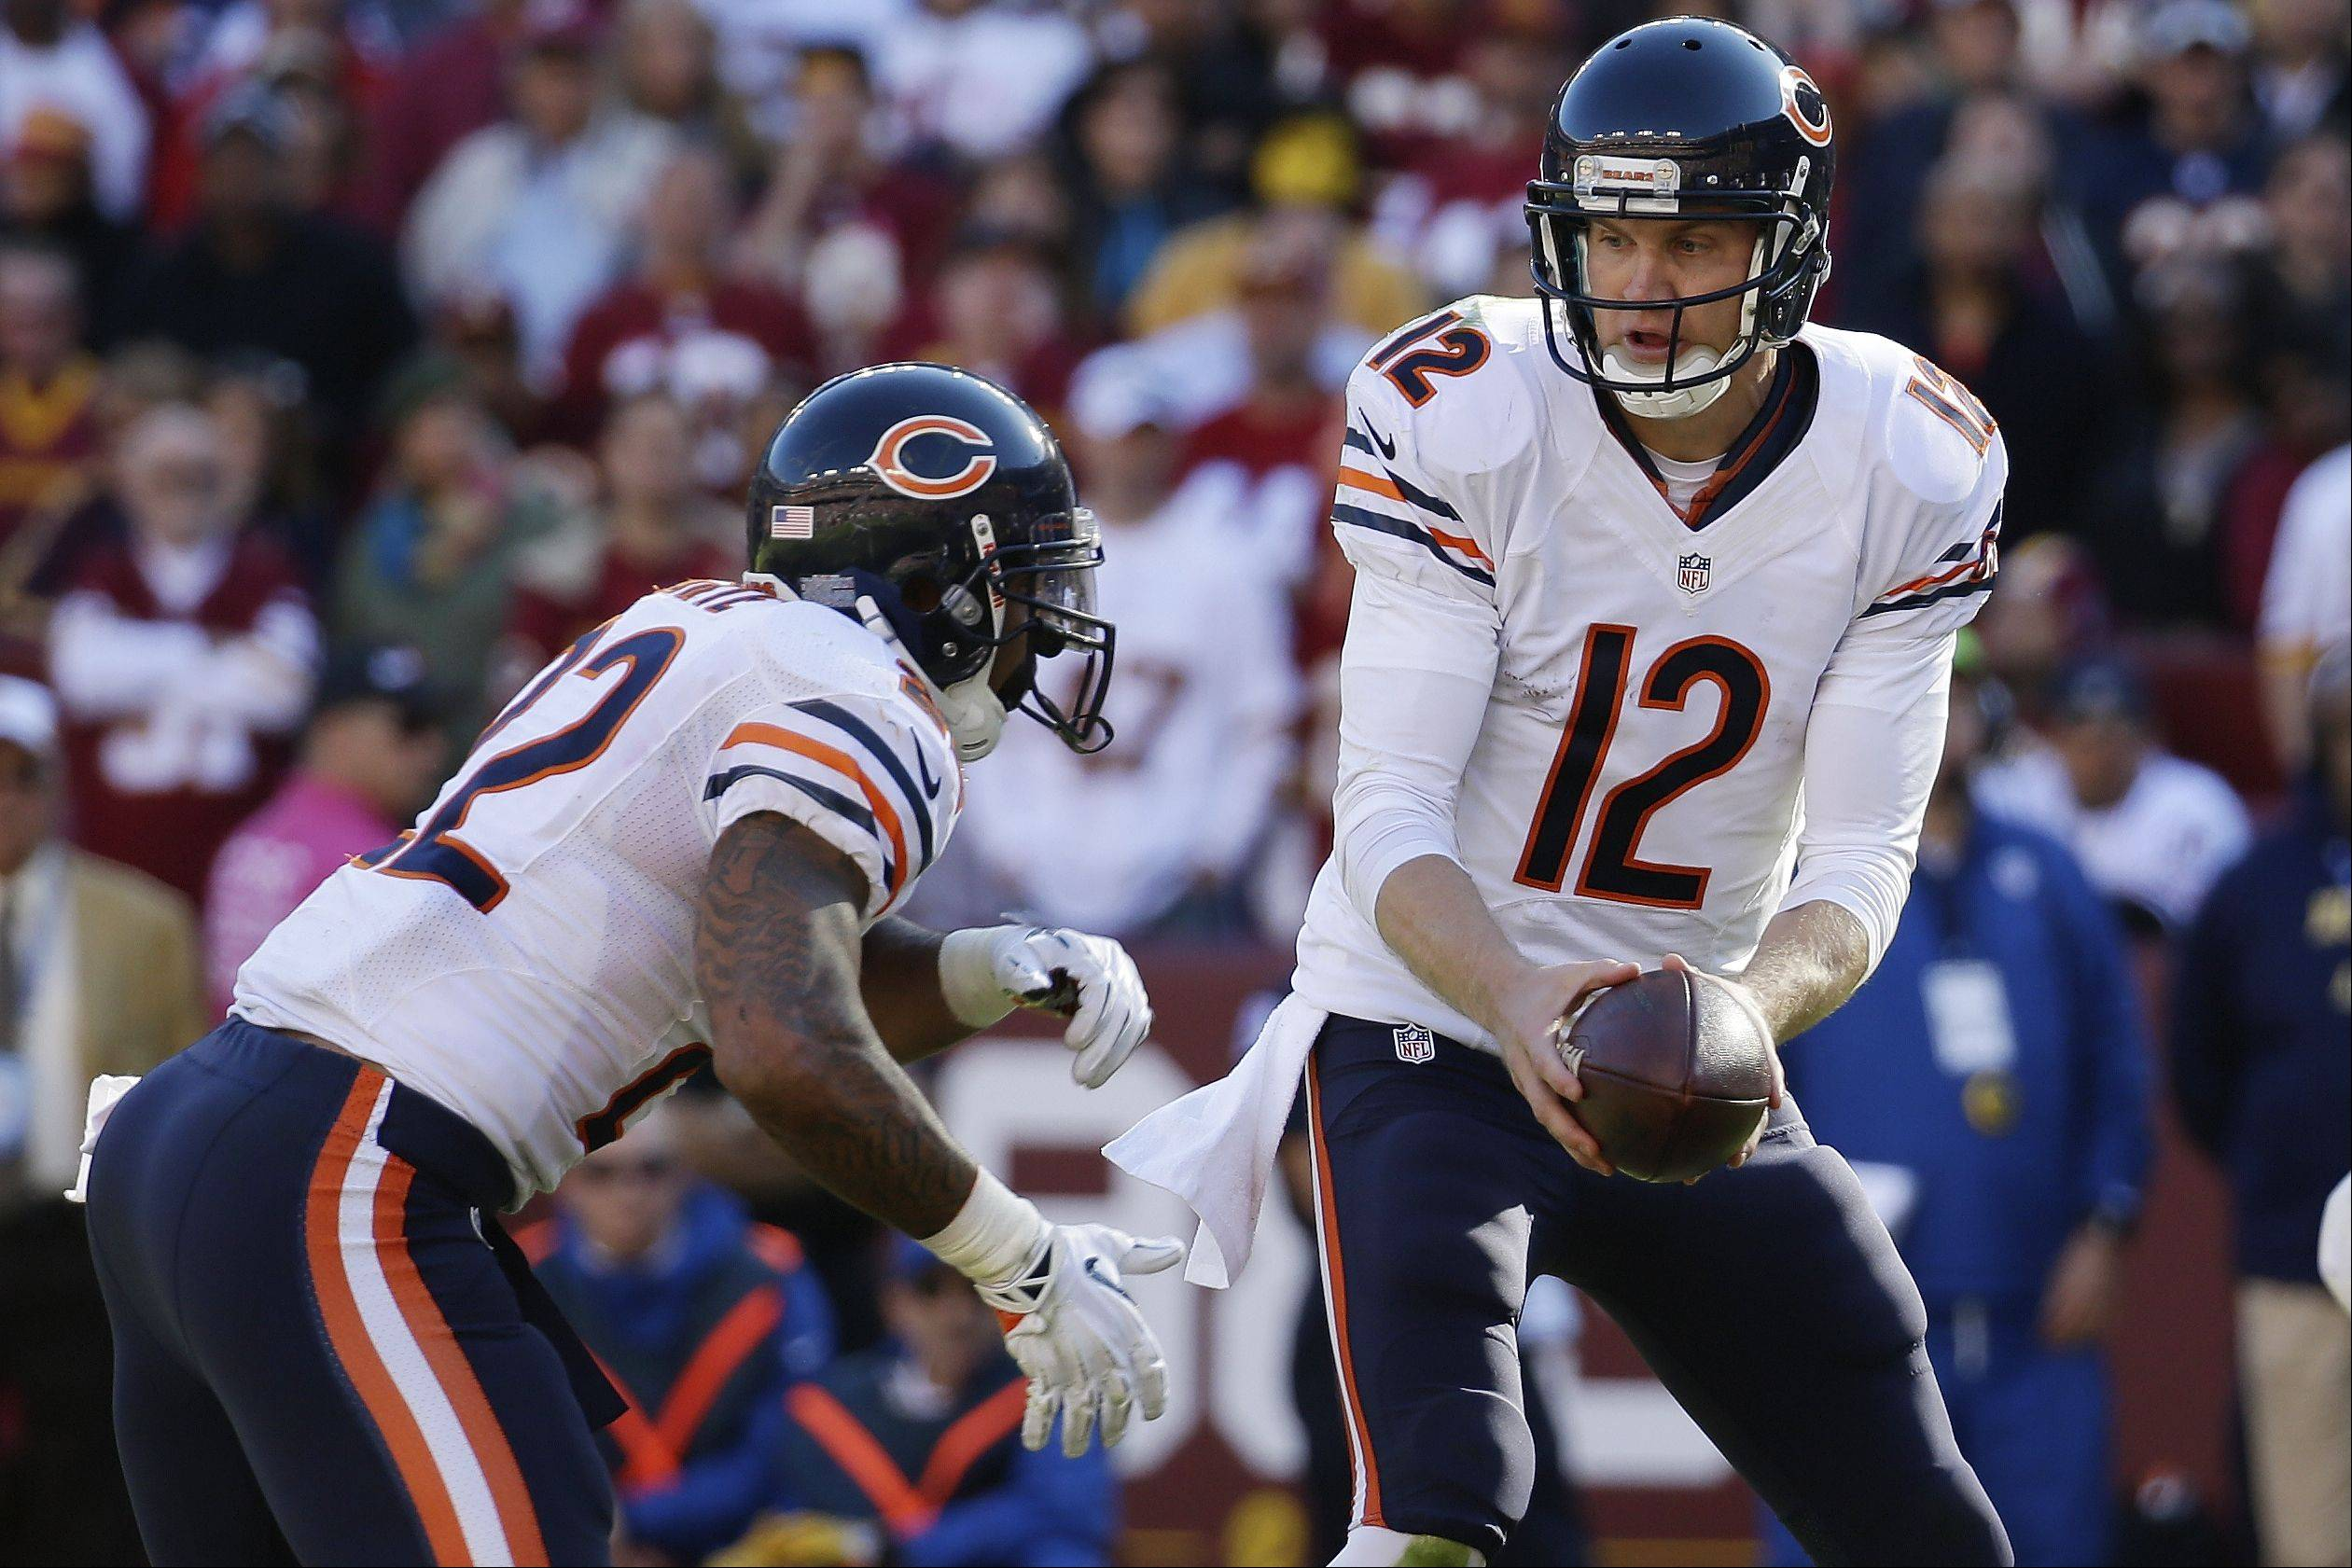 Bears quarterback Josh McCown, with help from running back Matt Forte, led the offense to 24 point points against Washington in the second half of Sunday's 45-41 loss.